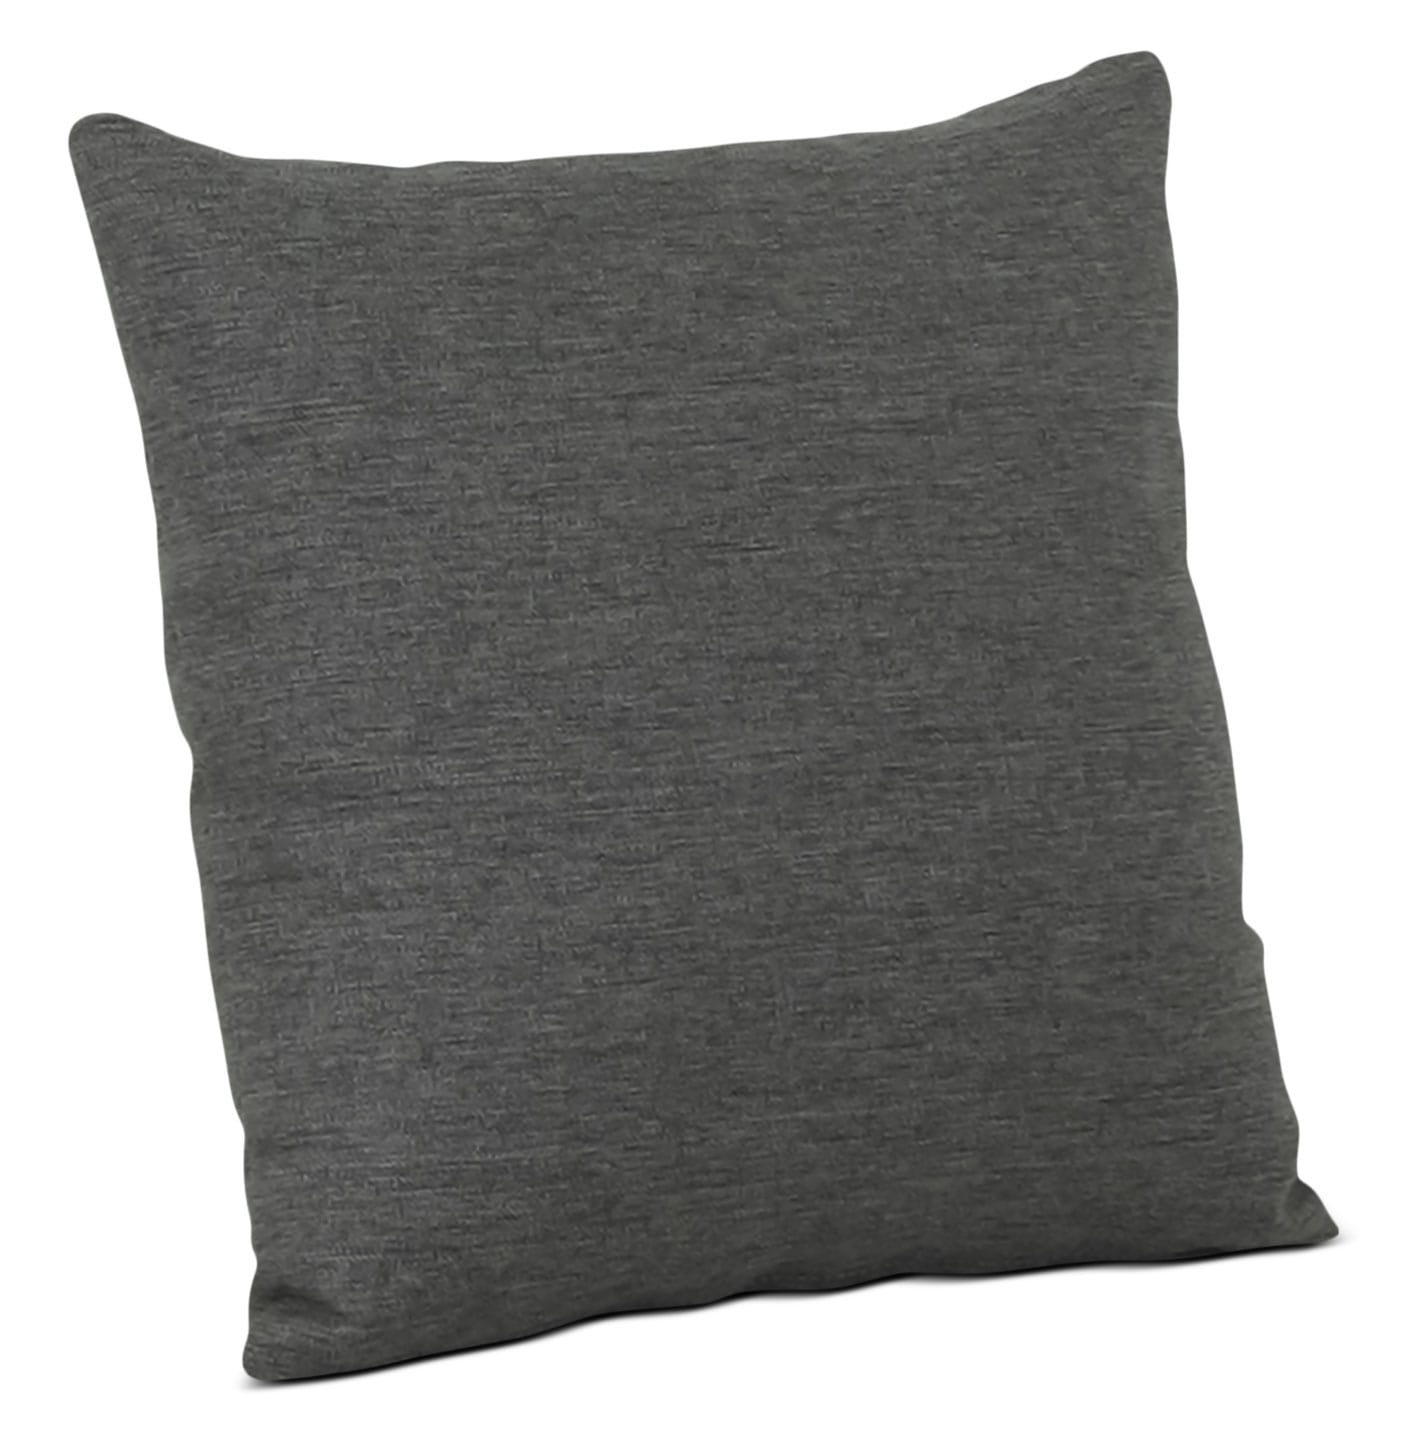 Designed2B Linen-Look Fabric Accent Throw Pillow – Sophisticate Aluminum